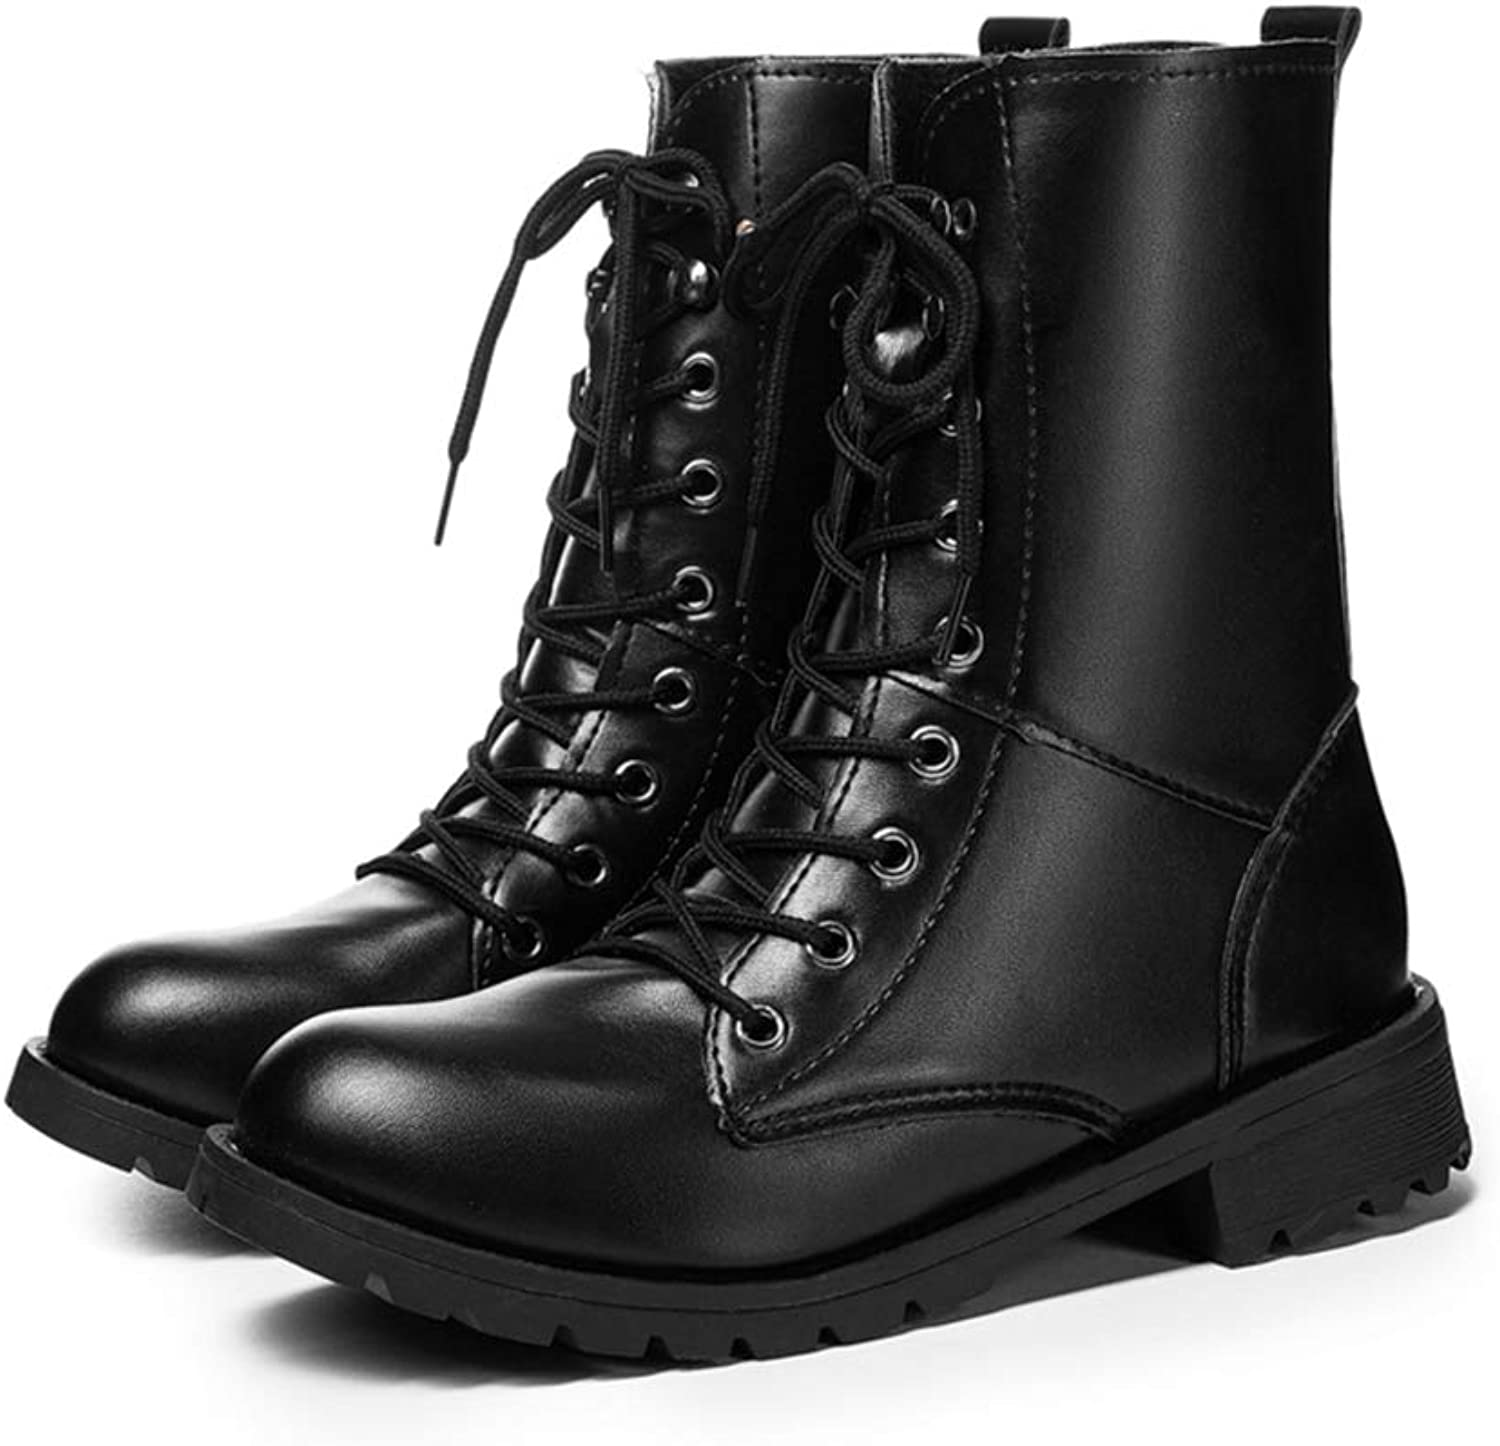 Hoxekle PU Faux Leather Women Boots Low Heel Winter shoes Bottines Femme Couples Motorcycle Ankle Boots Female Boots